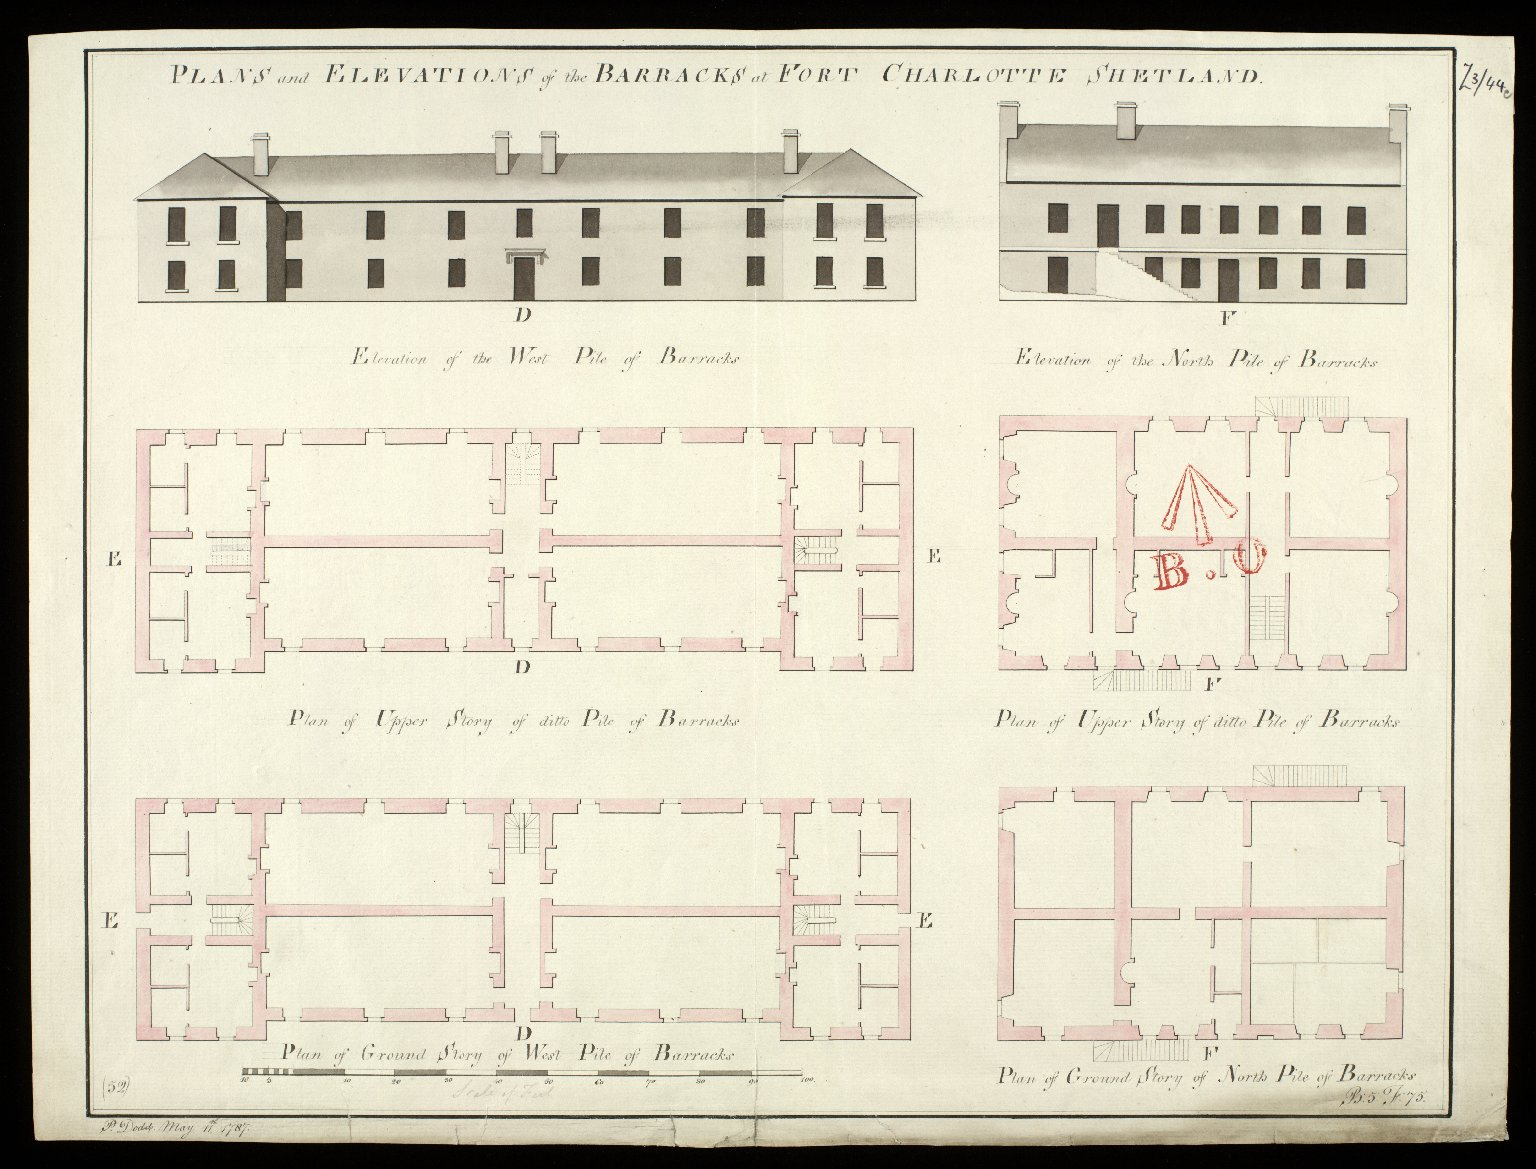 Plans and elevations of the barracks at Fort Charlotte Shetland [1786] [copy] [1 of 1]